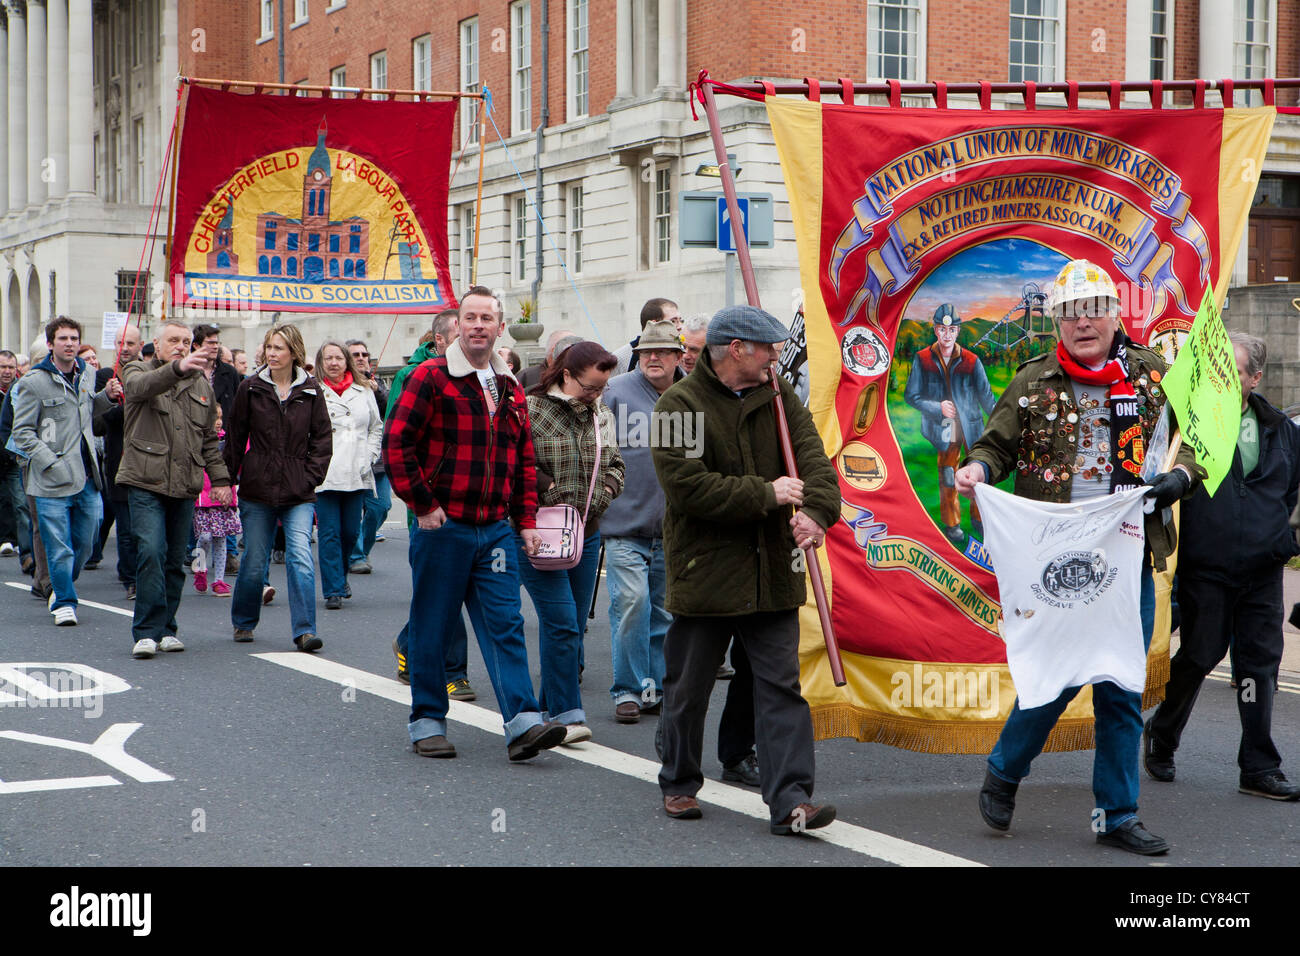 May Day Trade Unions Parade at Chesterfield Town Hall, Chesterfield, Derbyshire, England, UK - Stock Image